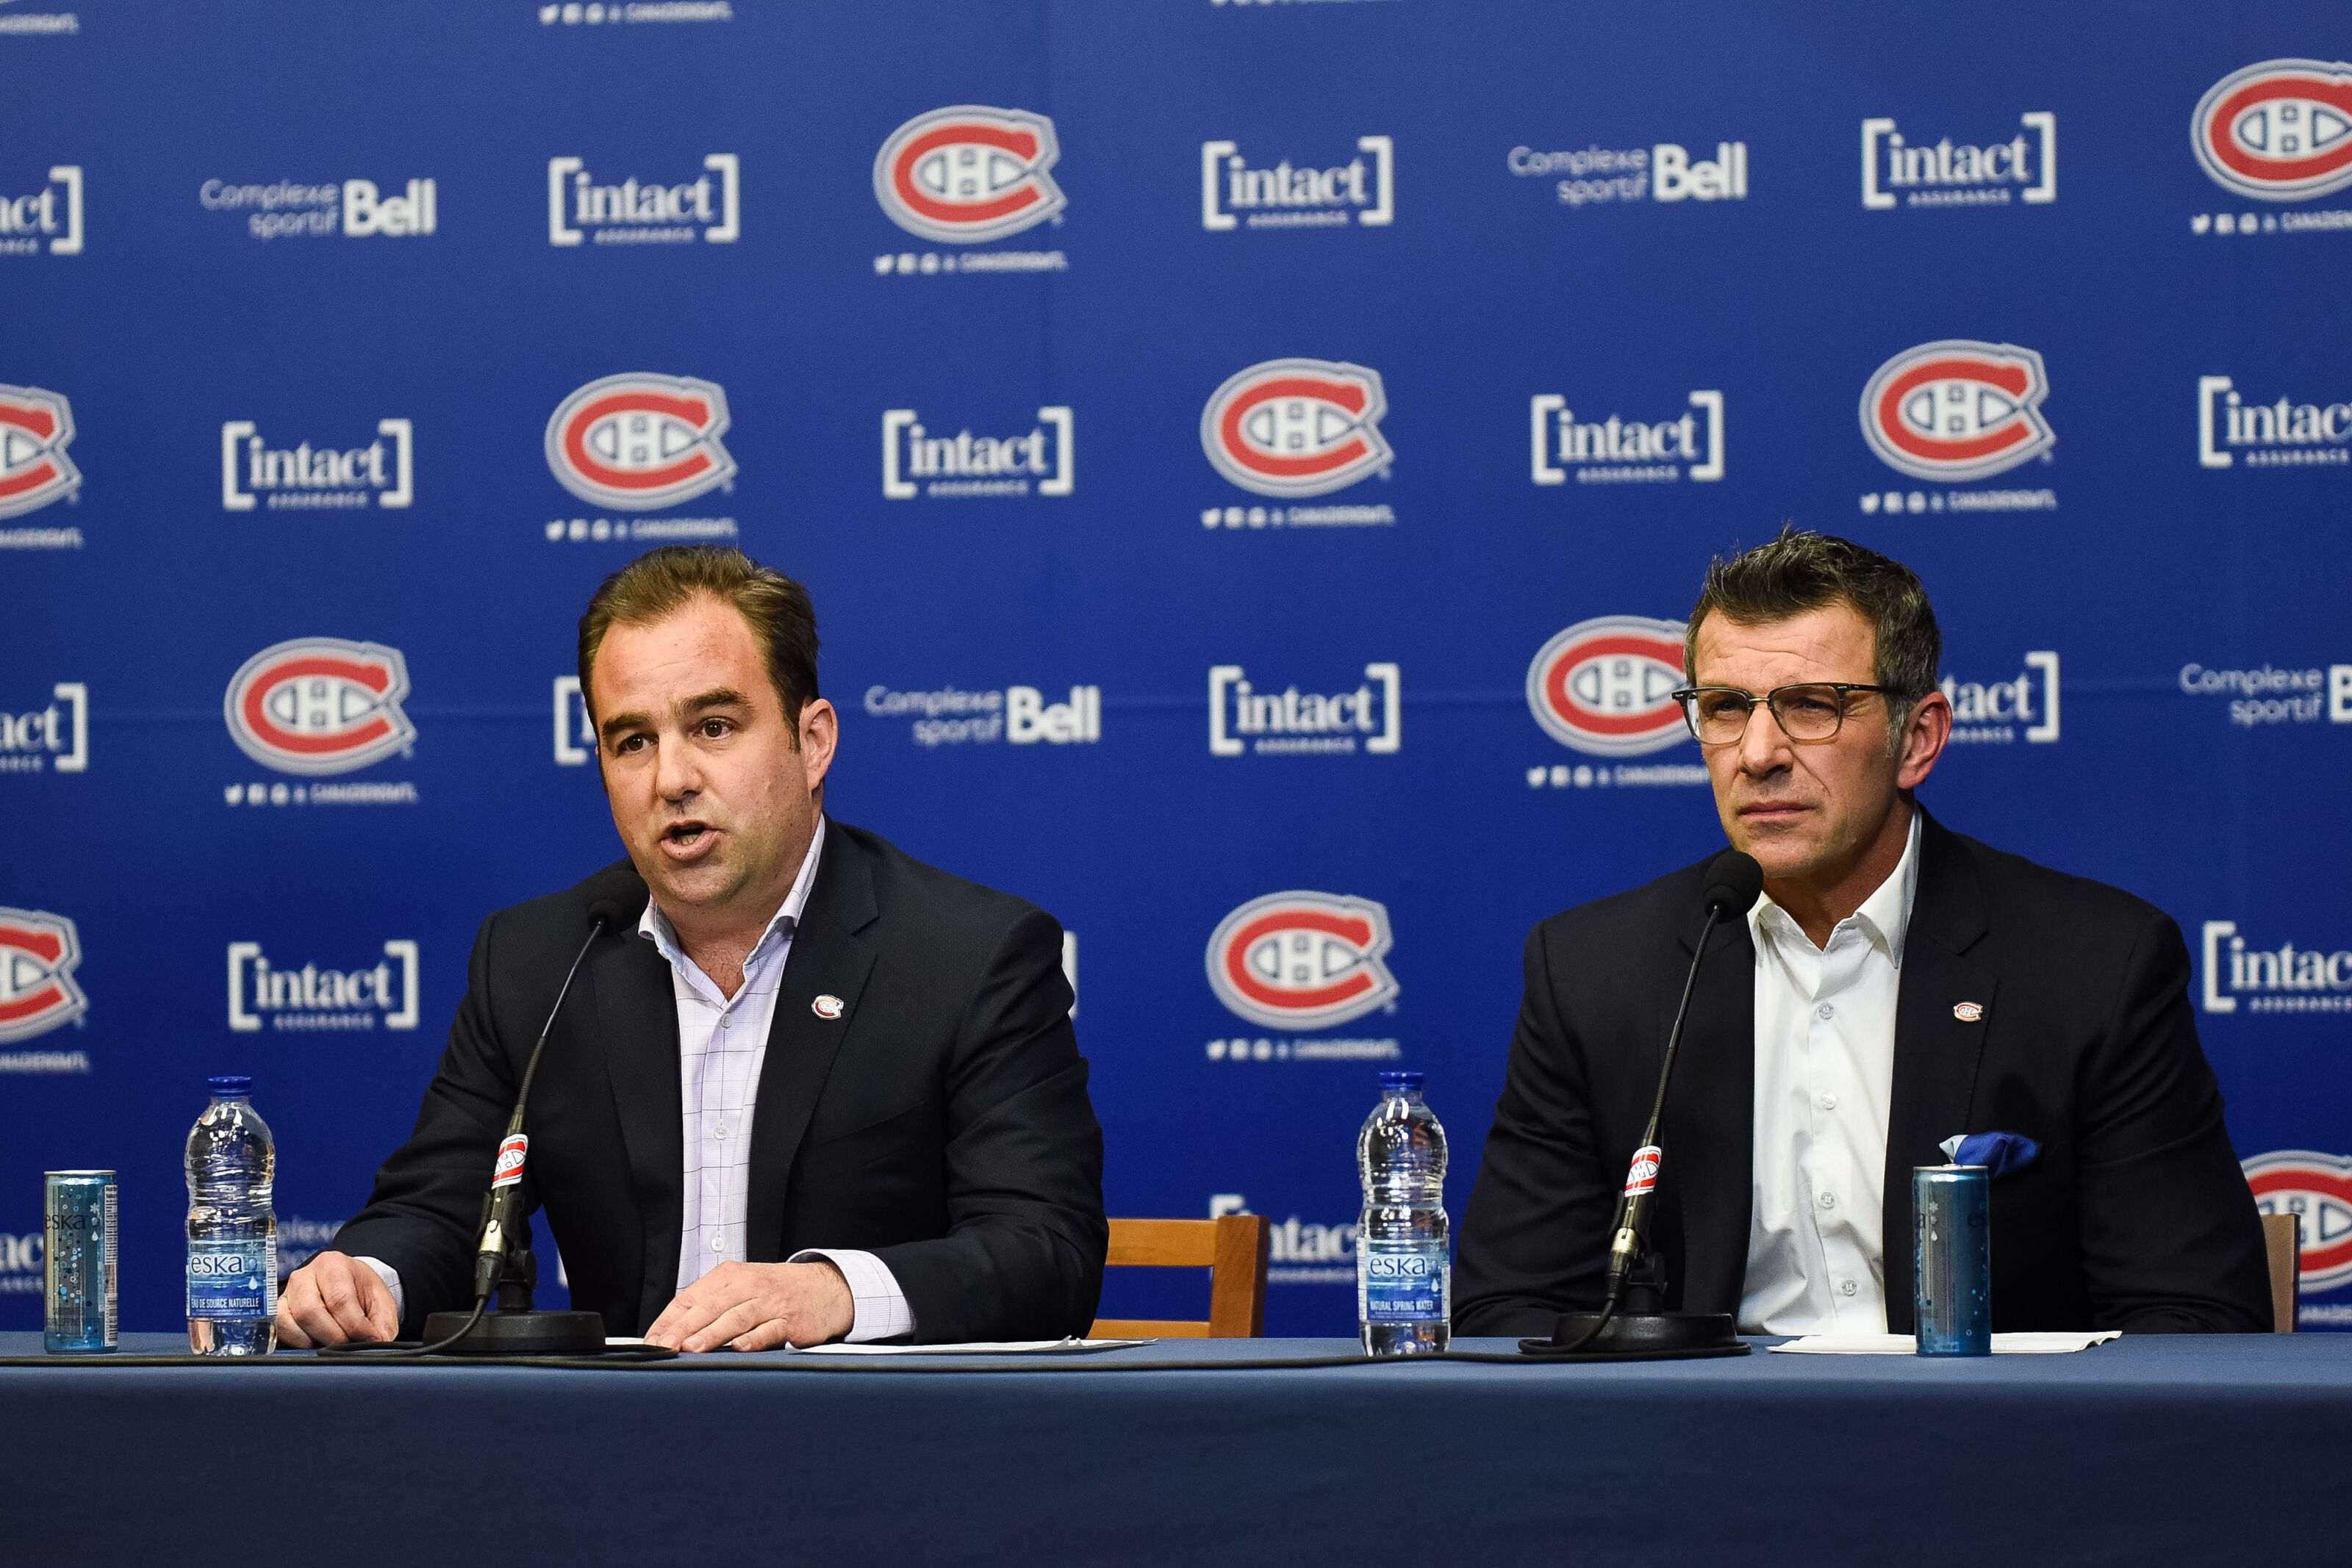 1 What Are Your Thoughts On The Rumours That Have Come Out About The Montreal Canadiens In The Last Year